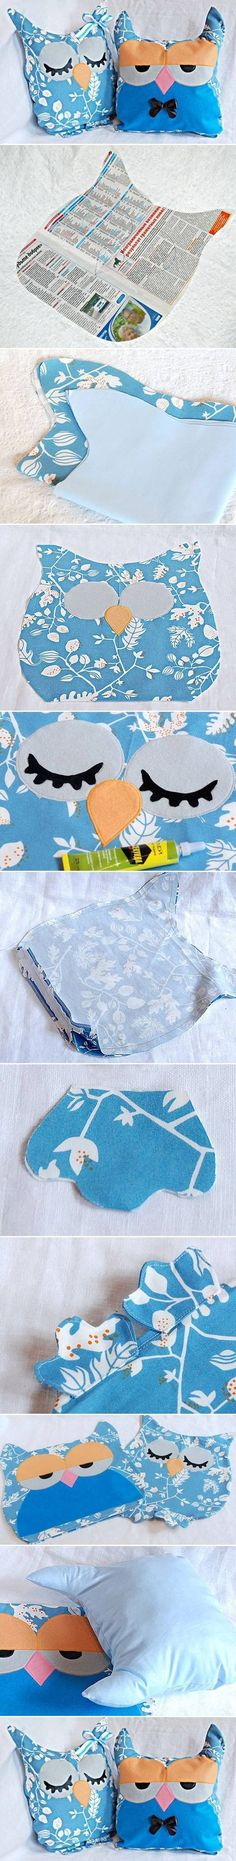 DIY Owl Pillow diy sew crafts craft ideas easy crafts diy ideas diy idea diy home diy pillows easy diy for the home crafty decor home ideas diy decorations diy sewing sewing ideas craft sewing  If you see an idea anywhere chances are we can make it, or we know someone who can! Just visit us on our facebook page or call us 765-744-1080 (10:00am to 6:00pm EST)  Find out more about me at: https://www.facebook.com/pages/Rustic-Farmhouse-Decor